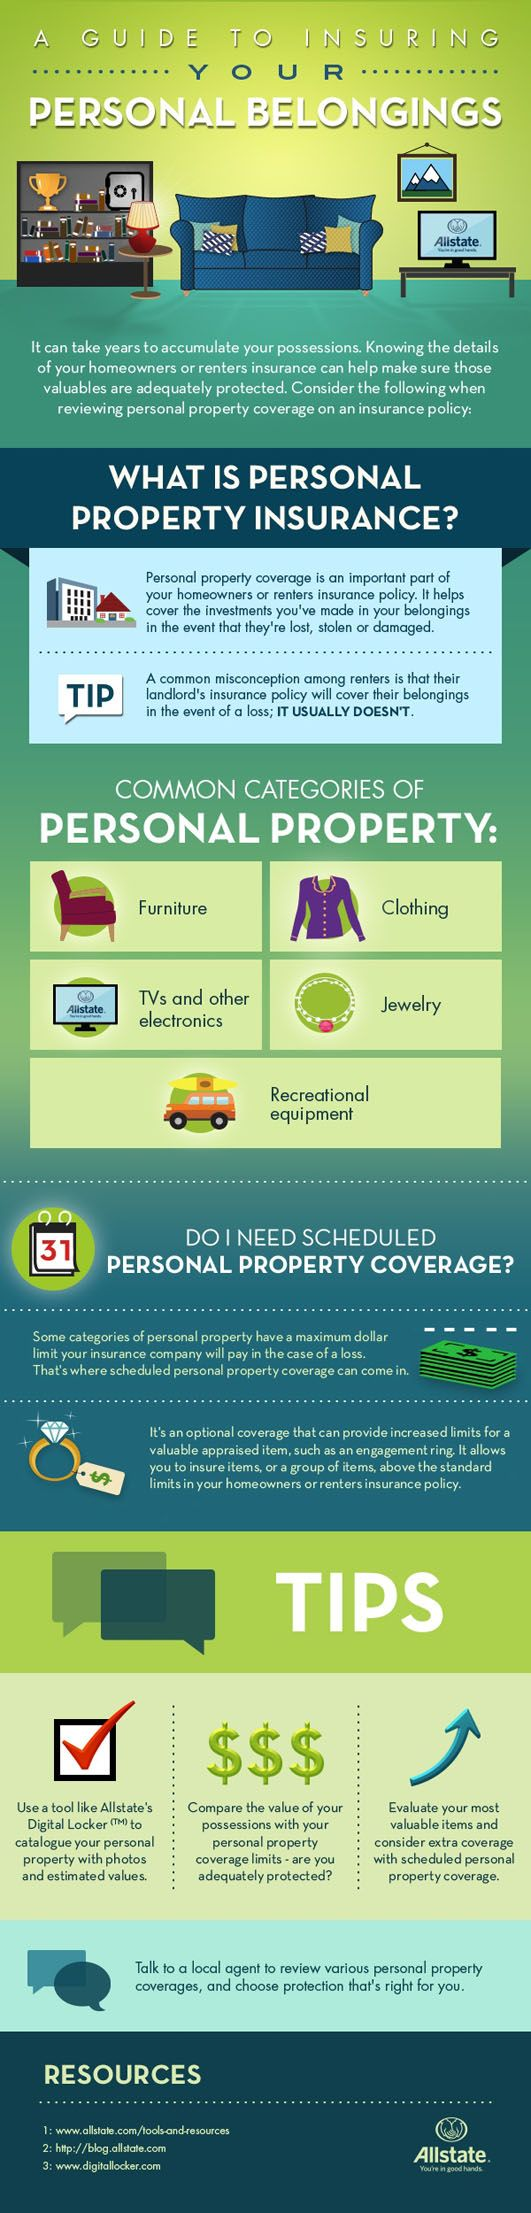 Protecting your personal belongings is important, this infographic can help.